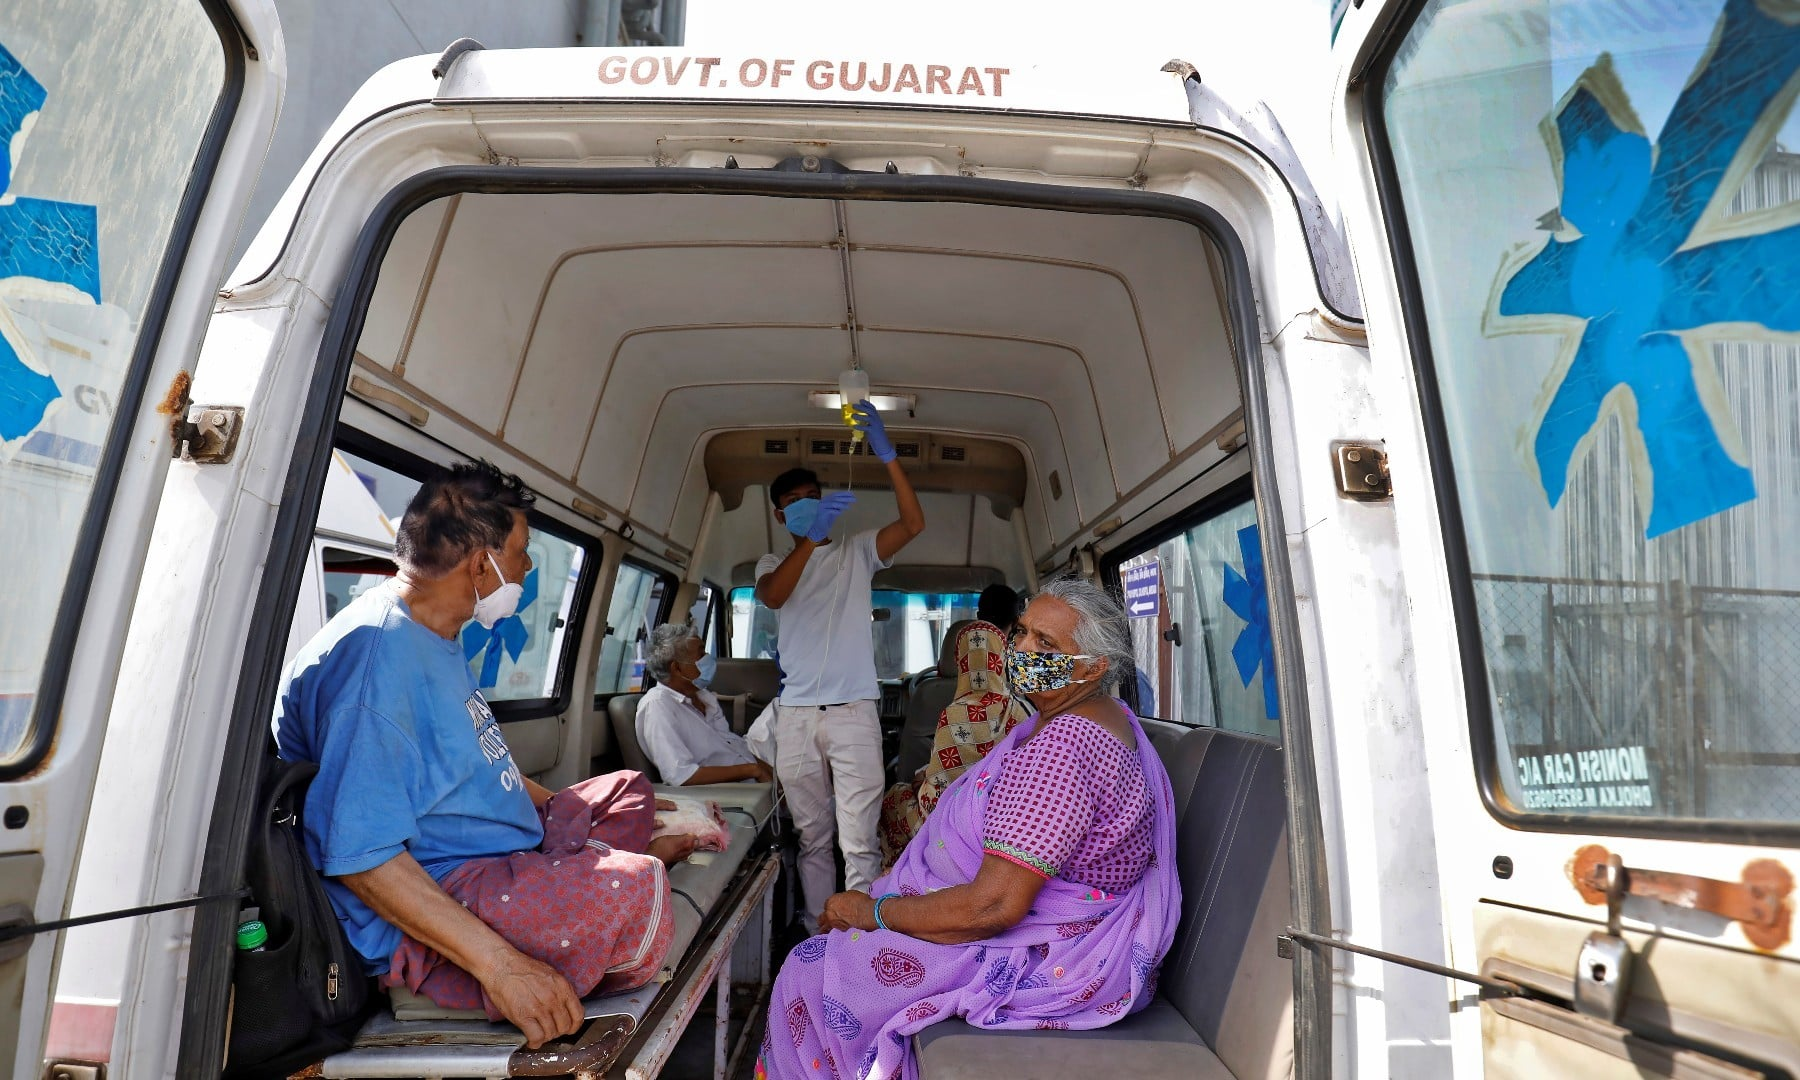 Patients are seen inside an ambulance while waiting to enter a Covid-19 hospital for treatment in Ahmedabad on April 22. — Reuters